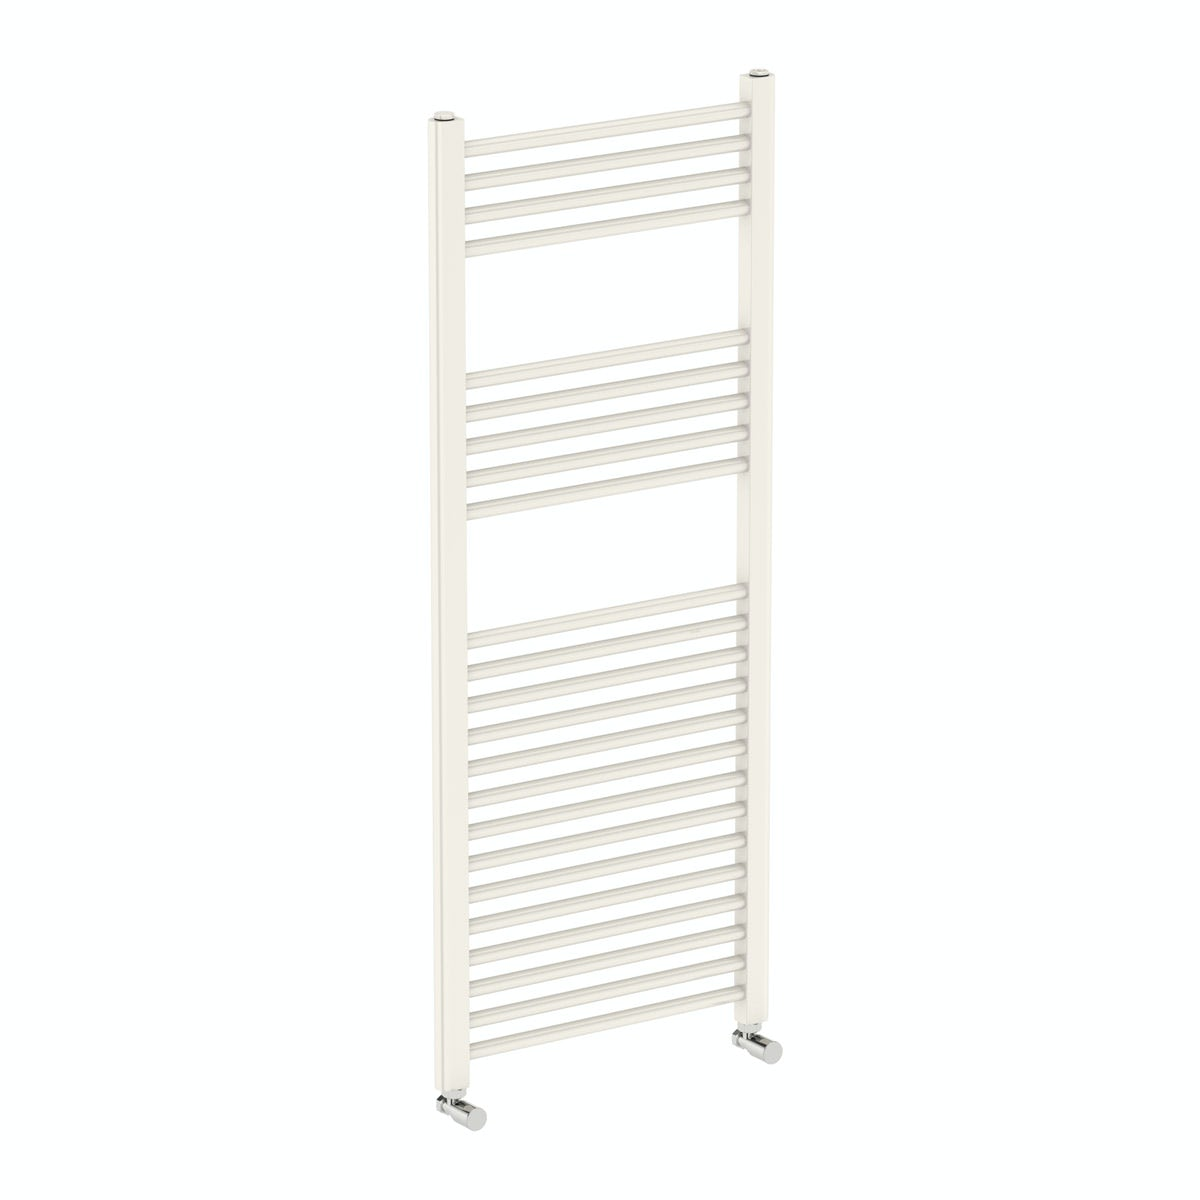 Eden round white heated towel rail 1200 x 490